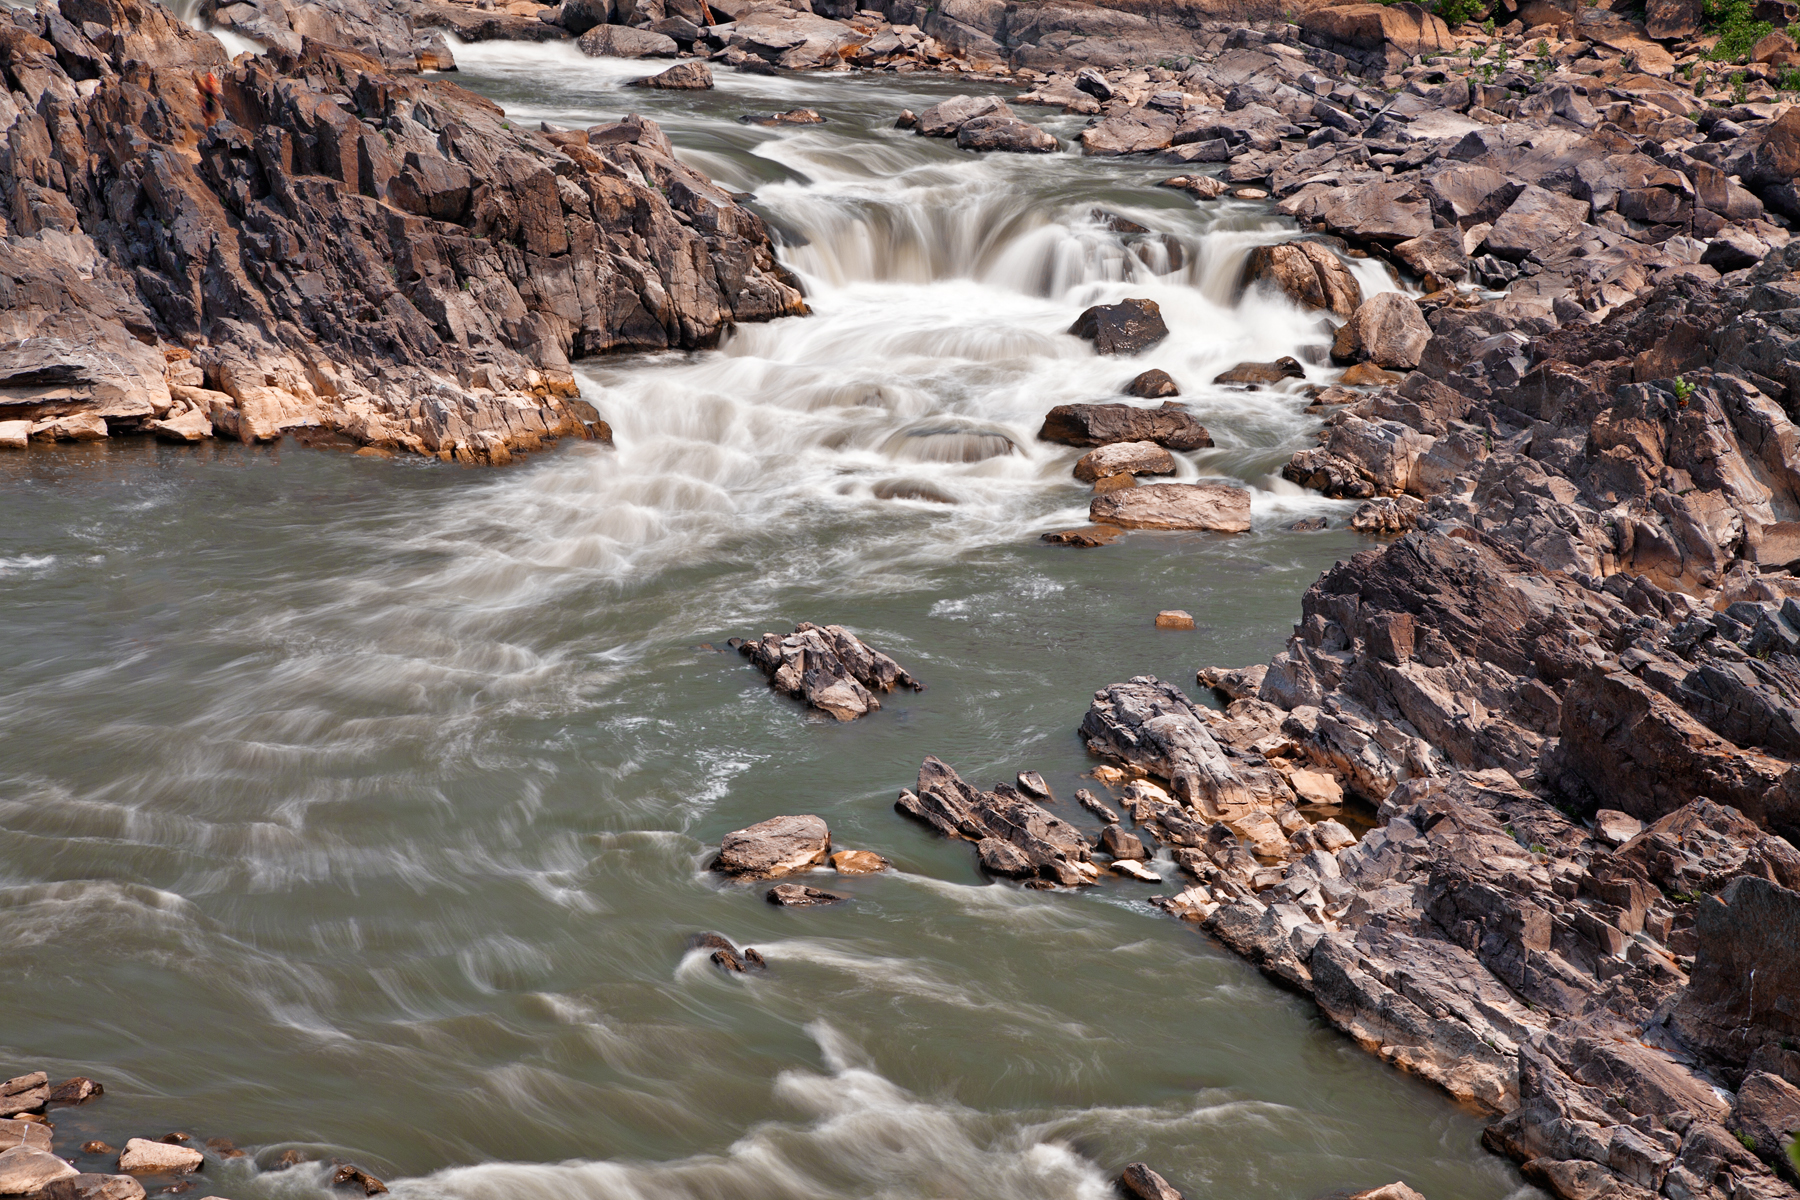 Great falls - hdr photo